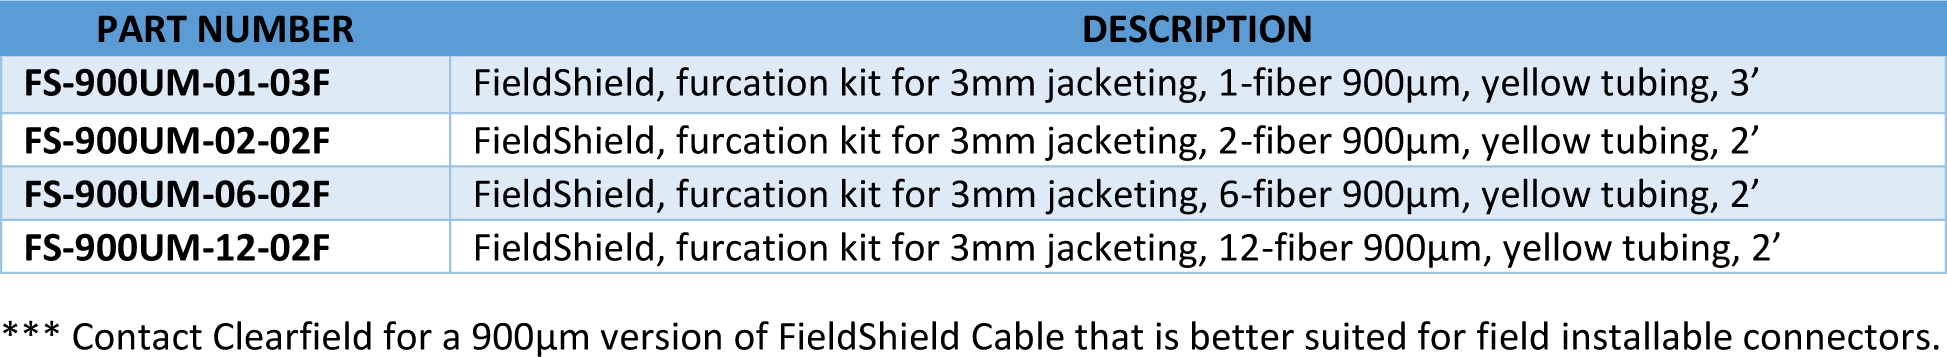 FieldShield Frequently Asked Questions